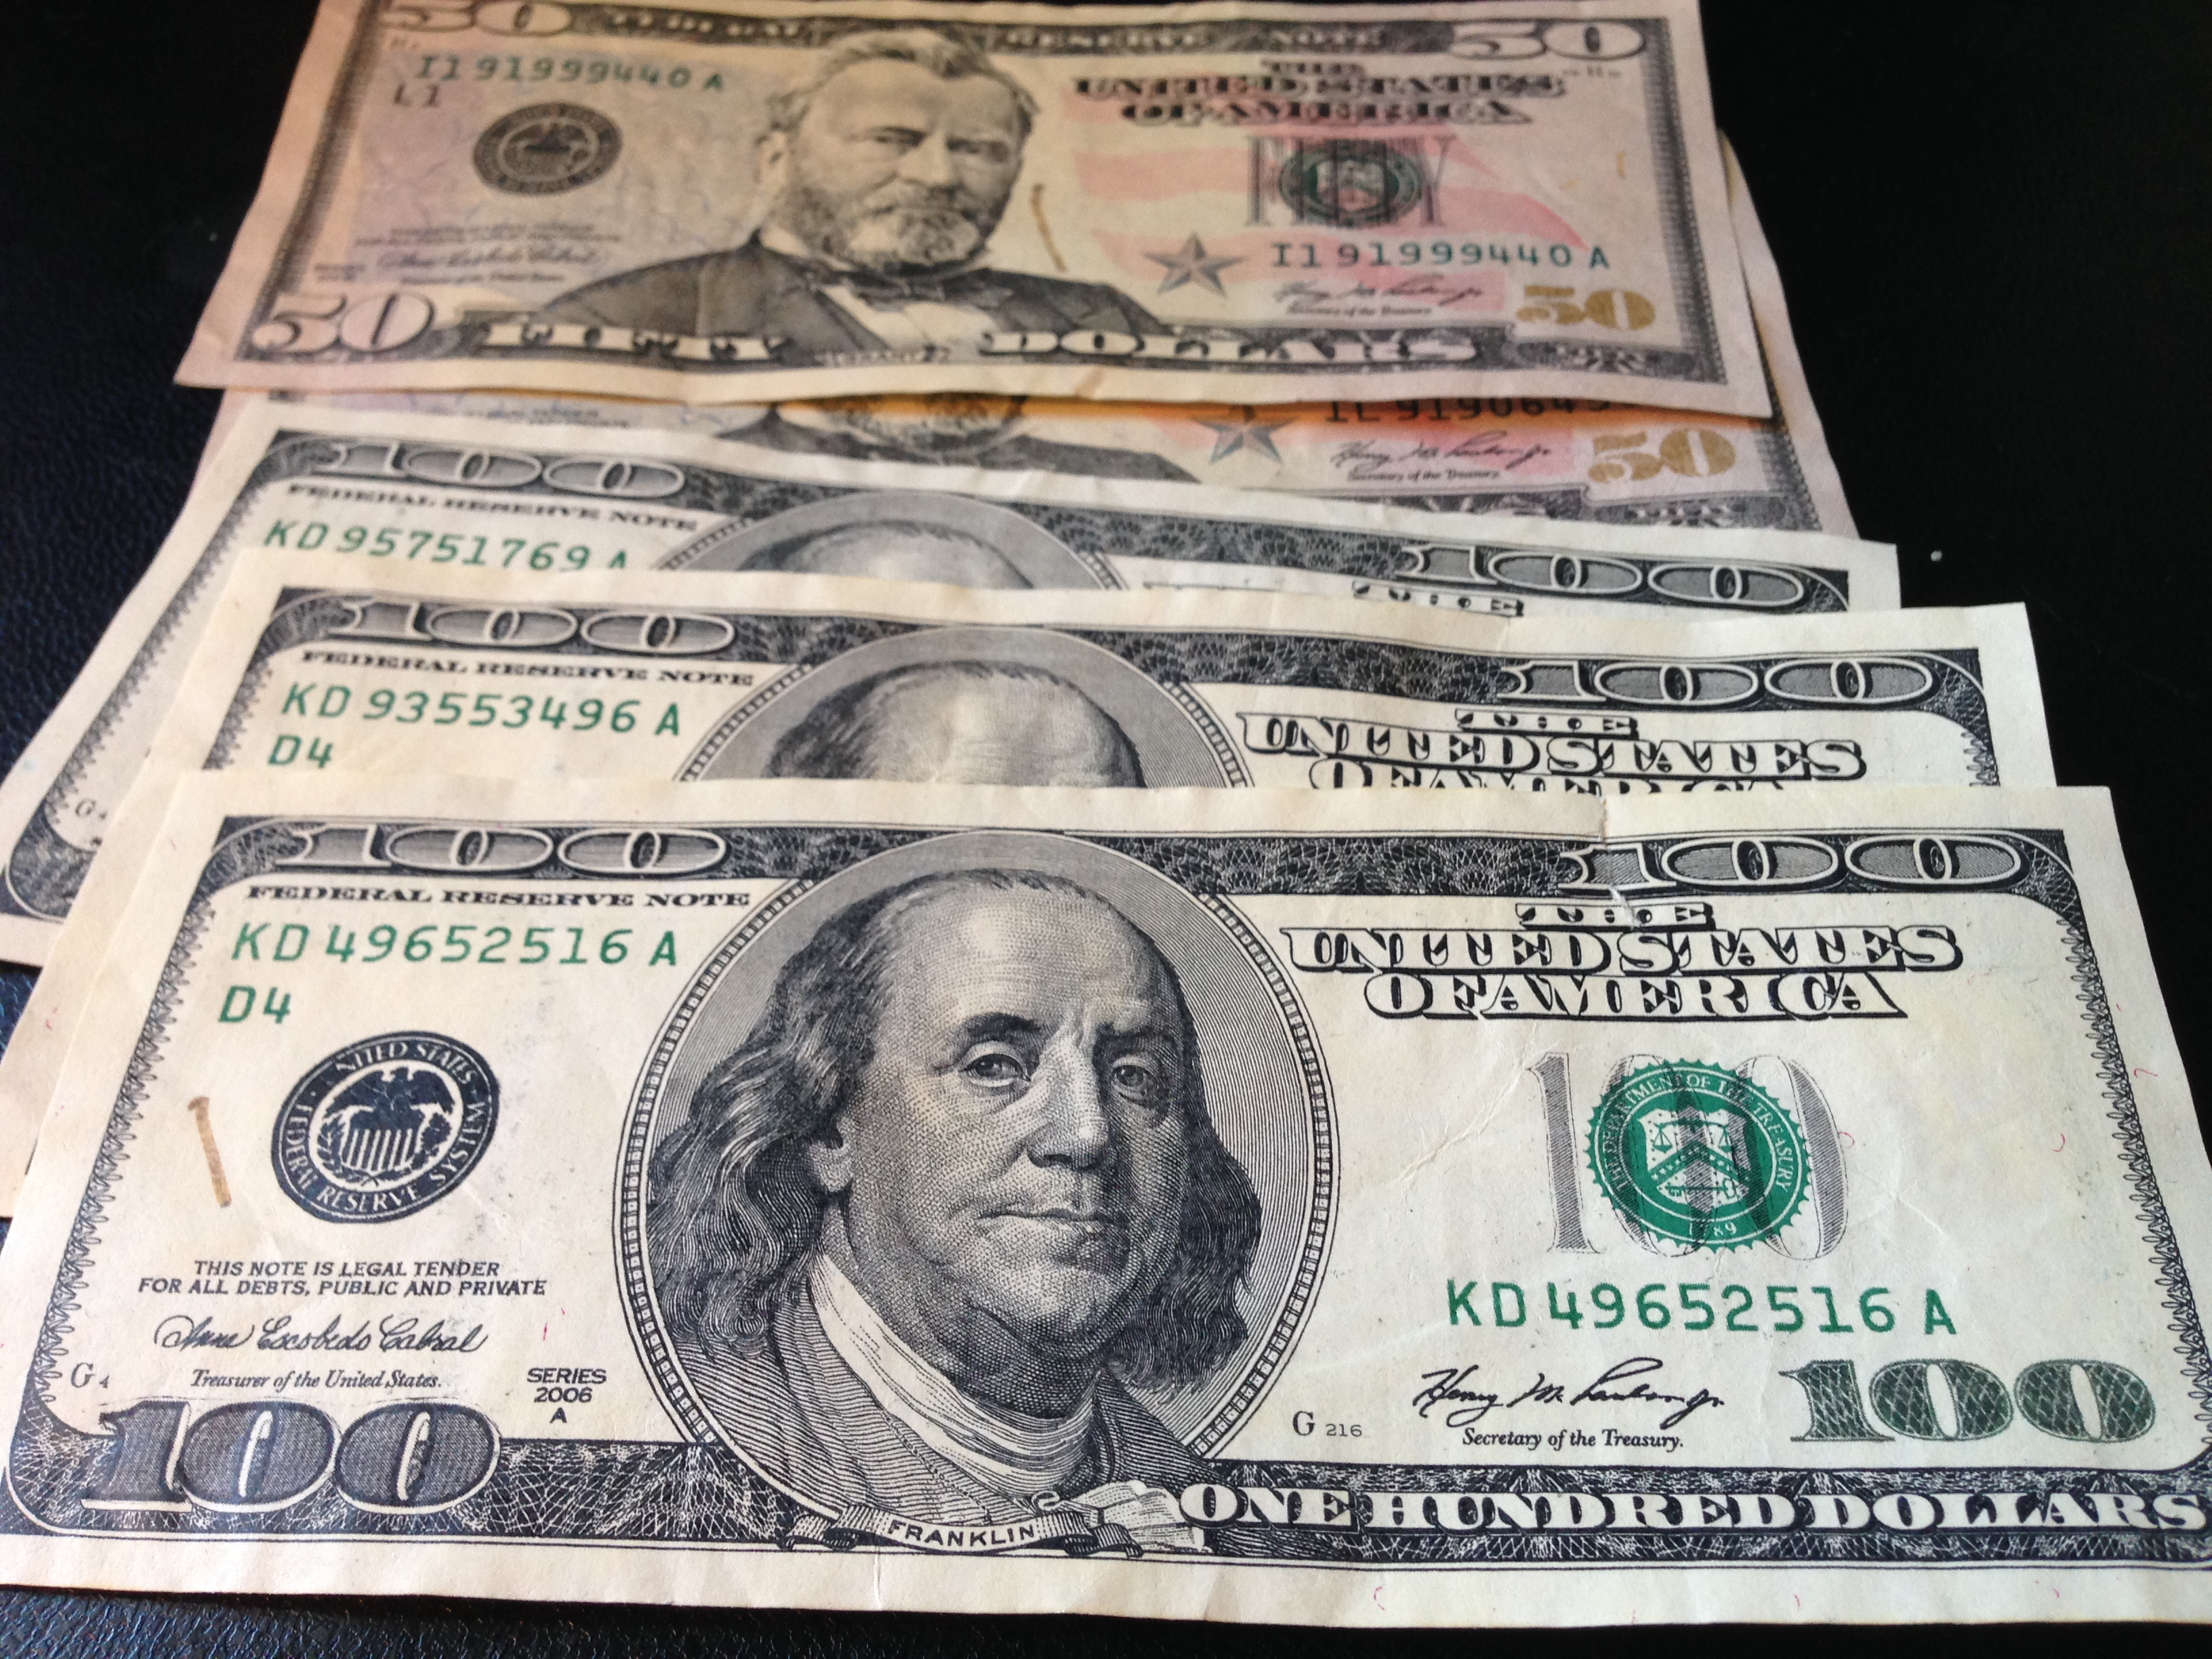 Alleged counterfeiter willy clock arrested krebs on for Fake money images